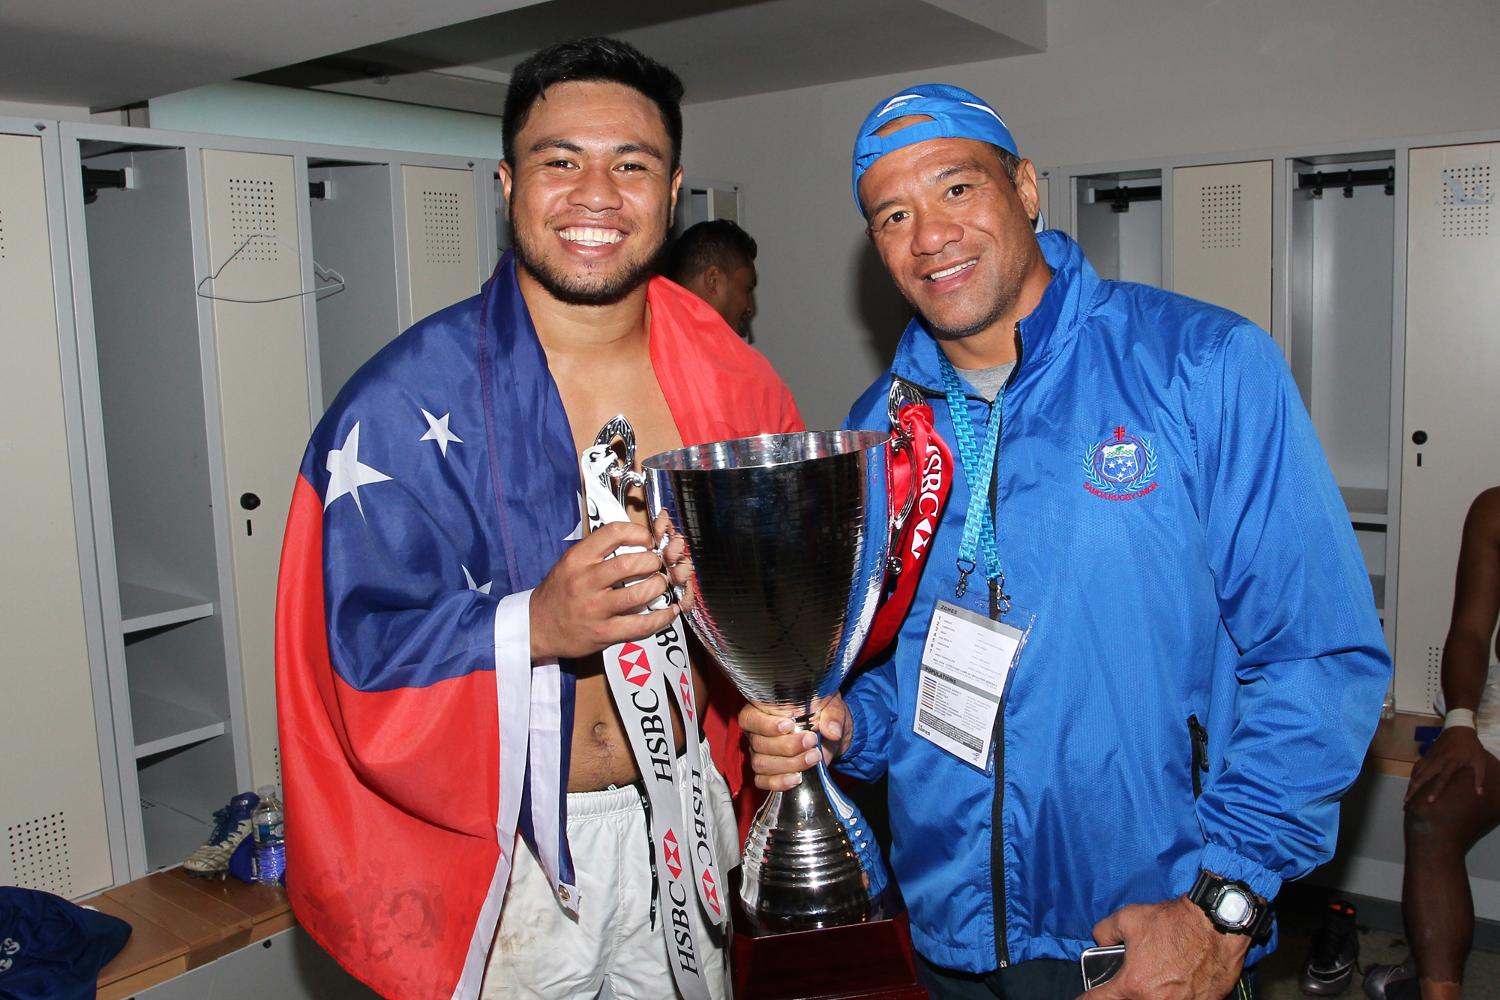 Brian Lima poses with the Cup after the HSBC Paris Sevens